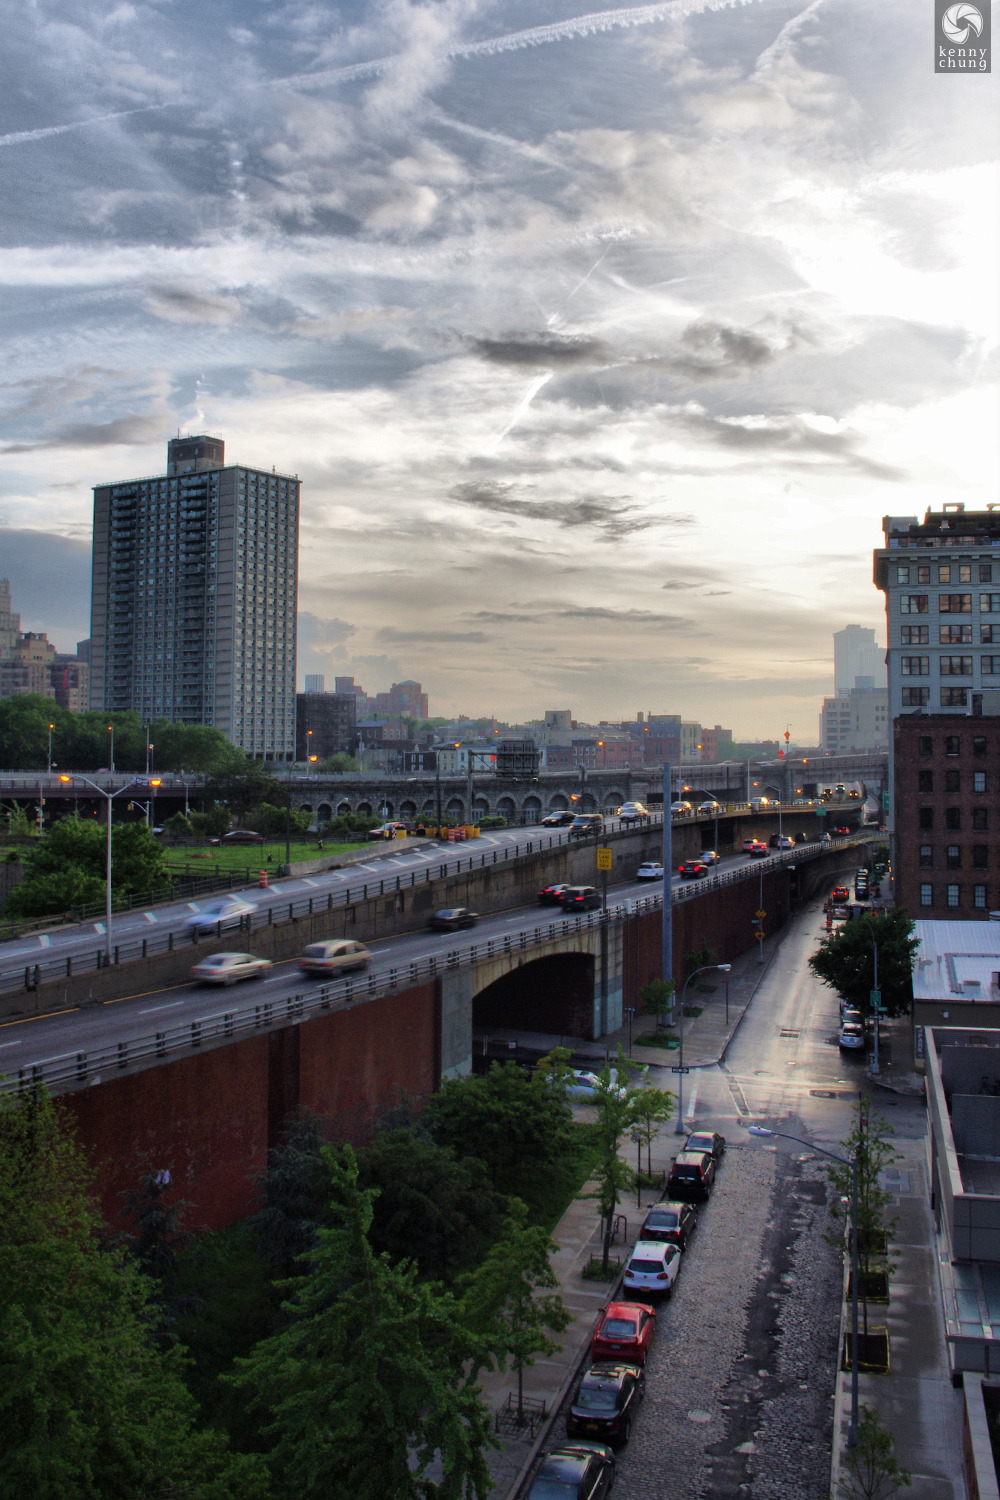 The Brooklyn Queens Expressway